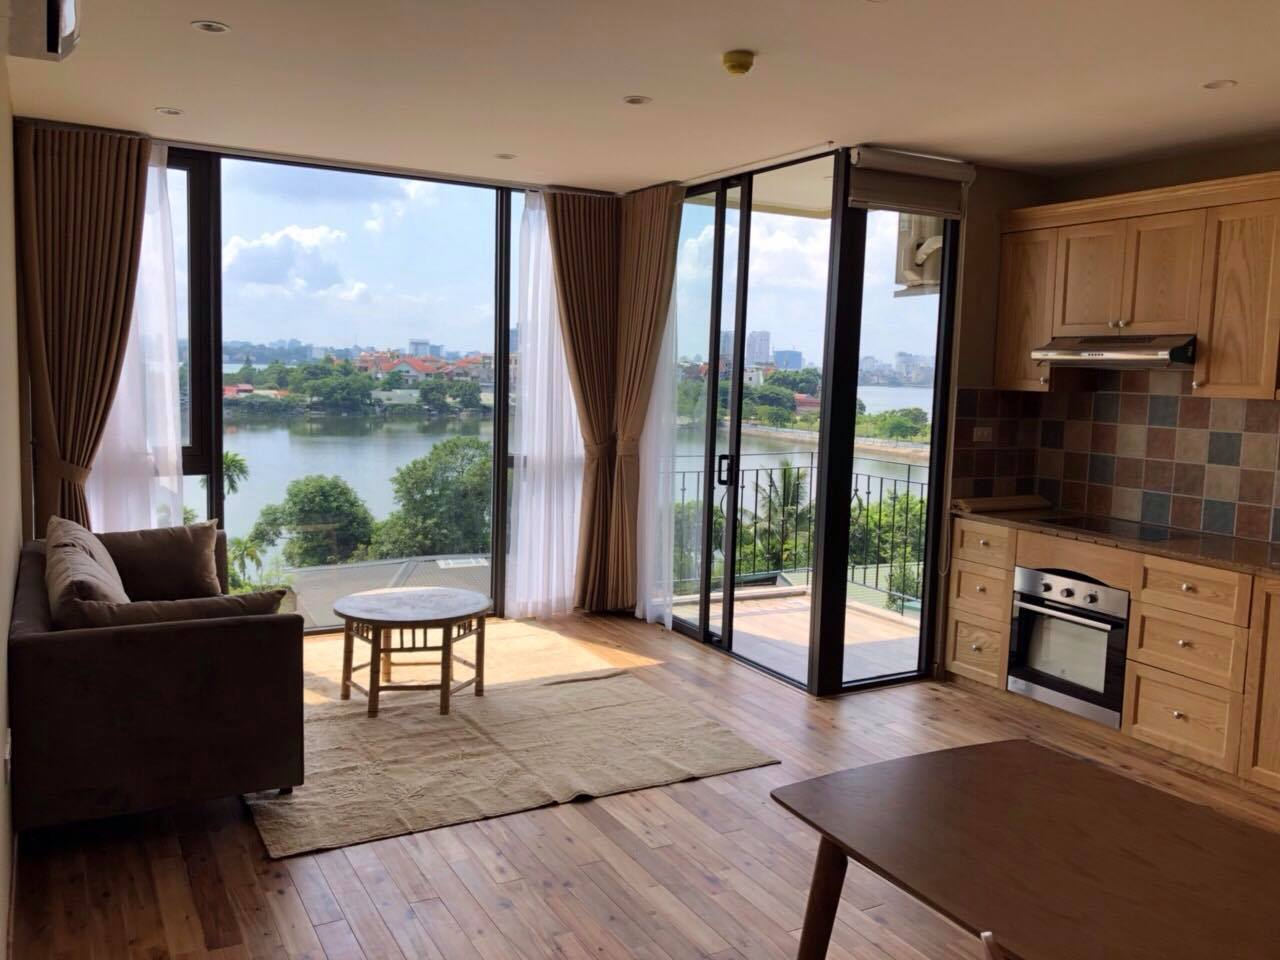 Modern and bright apartment for rent in Xom Chua, Dang Thai Mai street, Tay Ho distr